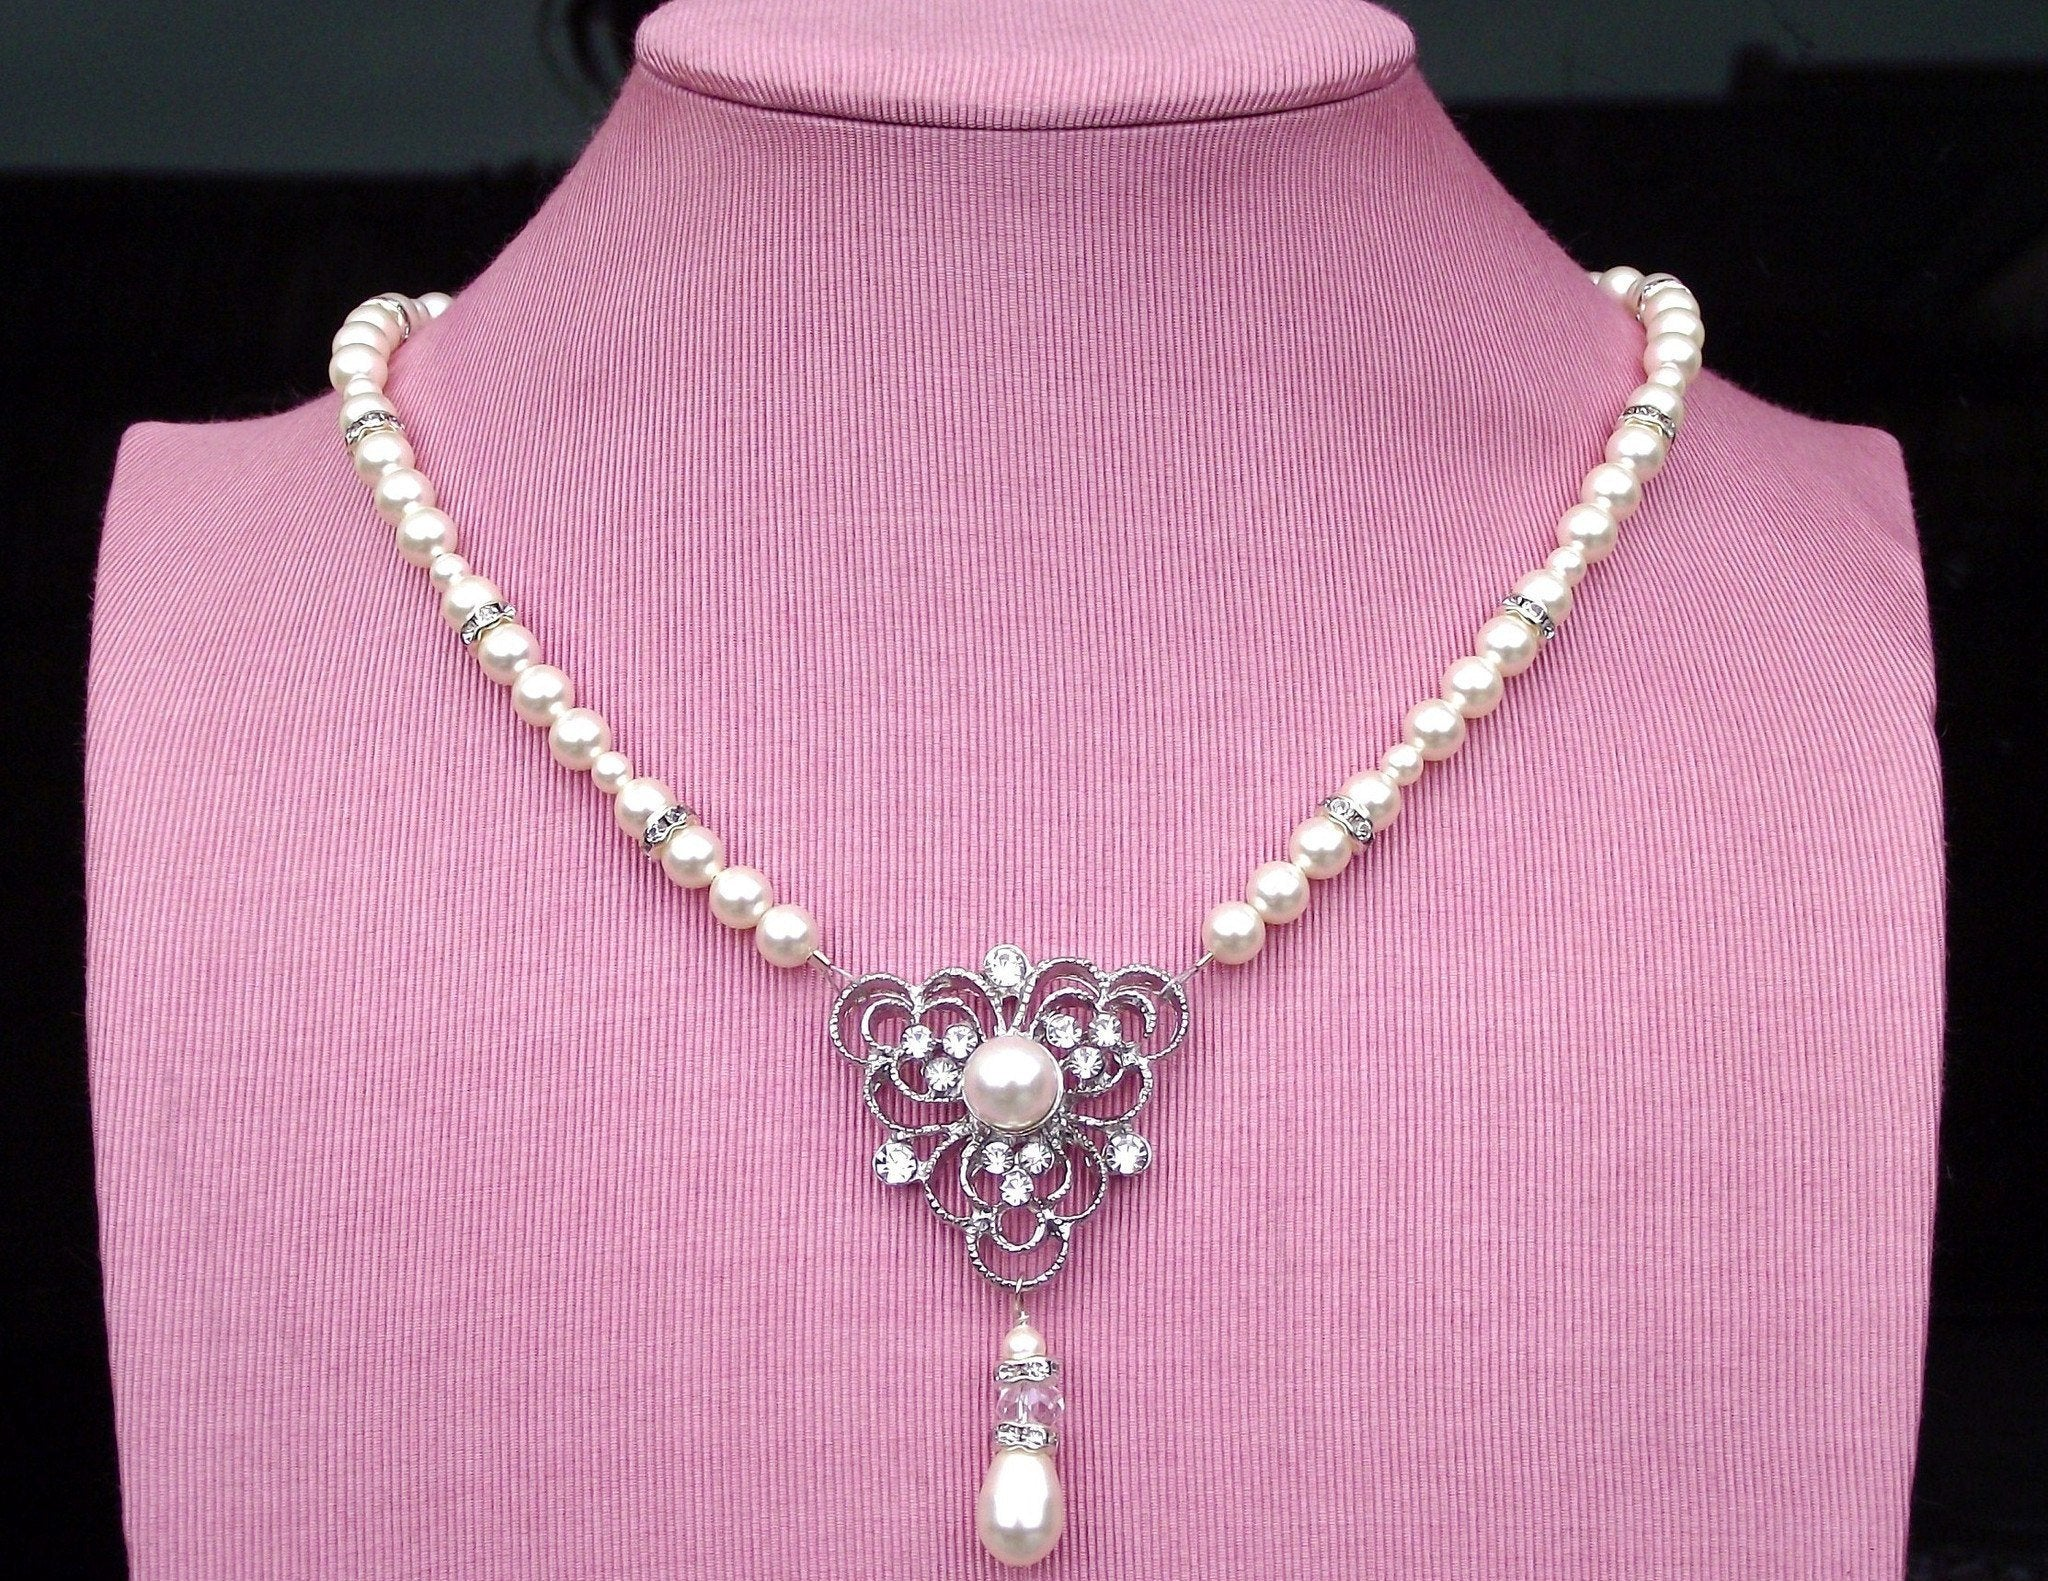 Wedding Necklace - Statement Rhinestone & Pearl Necklace, Eve-P